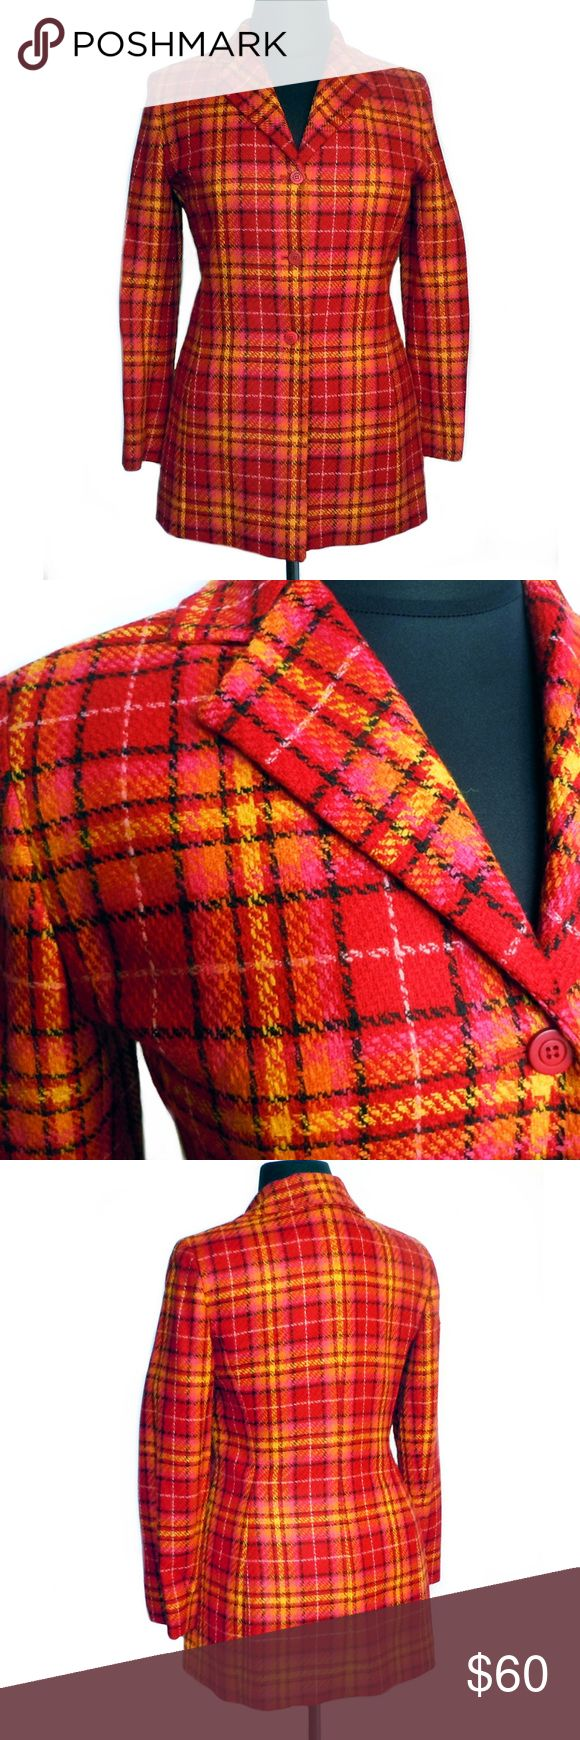 """RENA ROWAN Women's Wool Plaid Jacket Size 12 This is a women's coat or jacket from Rena Rowan. Size 12. NWT. It is made of Woolmark new Wool and has an acetate satin lining. Dry clean. It is a bright red, orange, yellow, and black plaid called """"Fiesta"""". Red lining. Red buttons. It has a classic collar and princess seams for a nice shape. Extra button included. This can look current or retro depending on what you pair it with. Always looks great with black pants and boots. Bust 42"""". Waist…"""